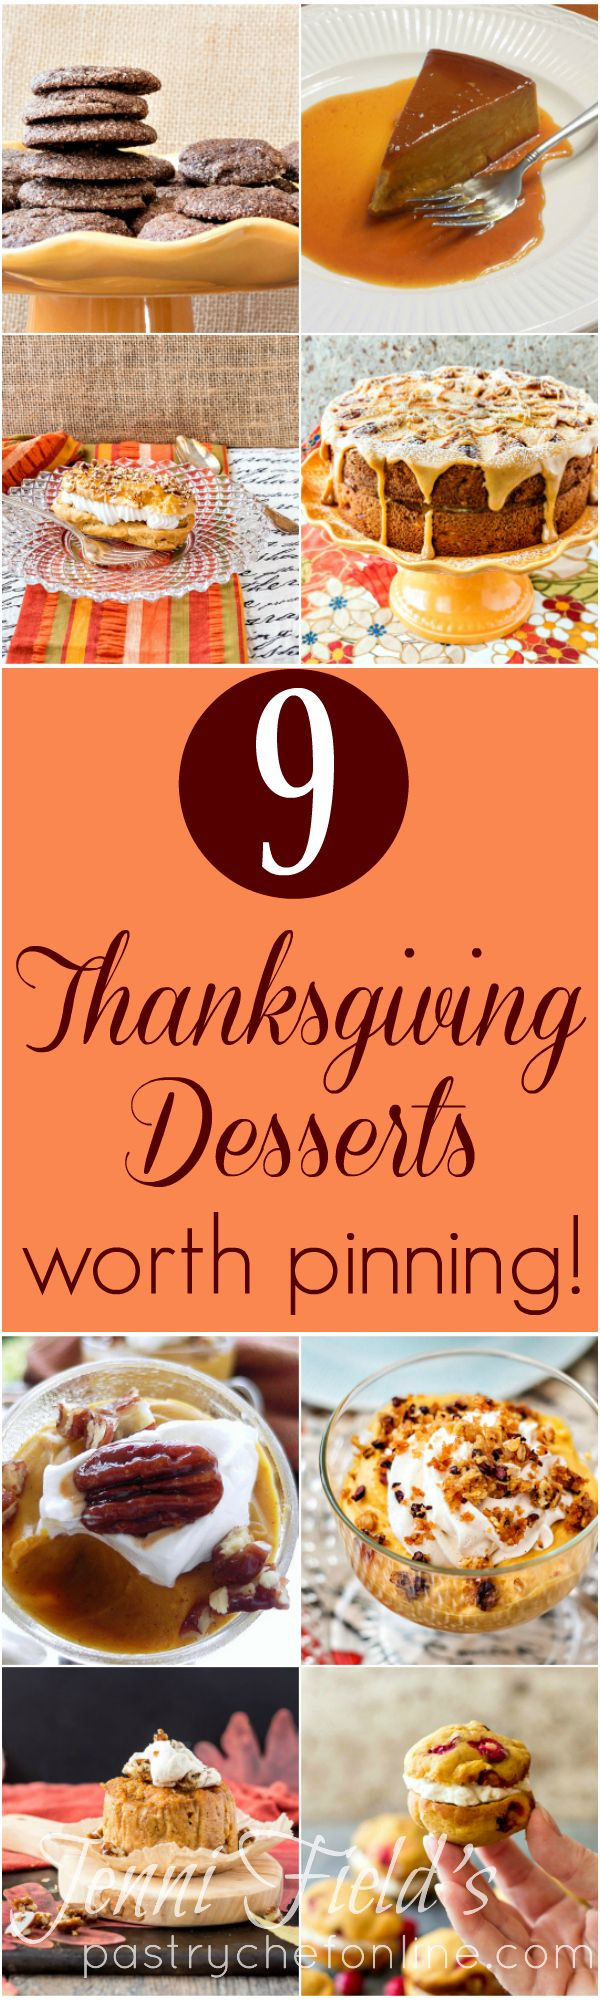 If you are looking for the best Thanksgiving dessert recipes I have to offer, you have found them here! Pumpkin desserts plus a lovely apple pecan cake, and some truly decadent chocoalate cookies. I think you will love this roundup of Thanksgiving Desserts worth pinning! | pastrychefonline.com